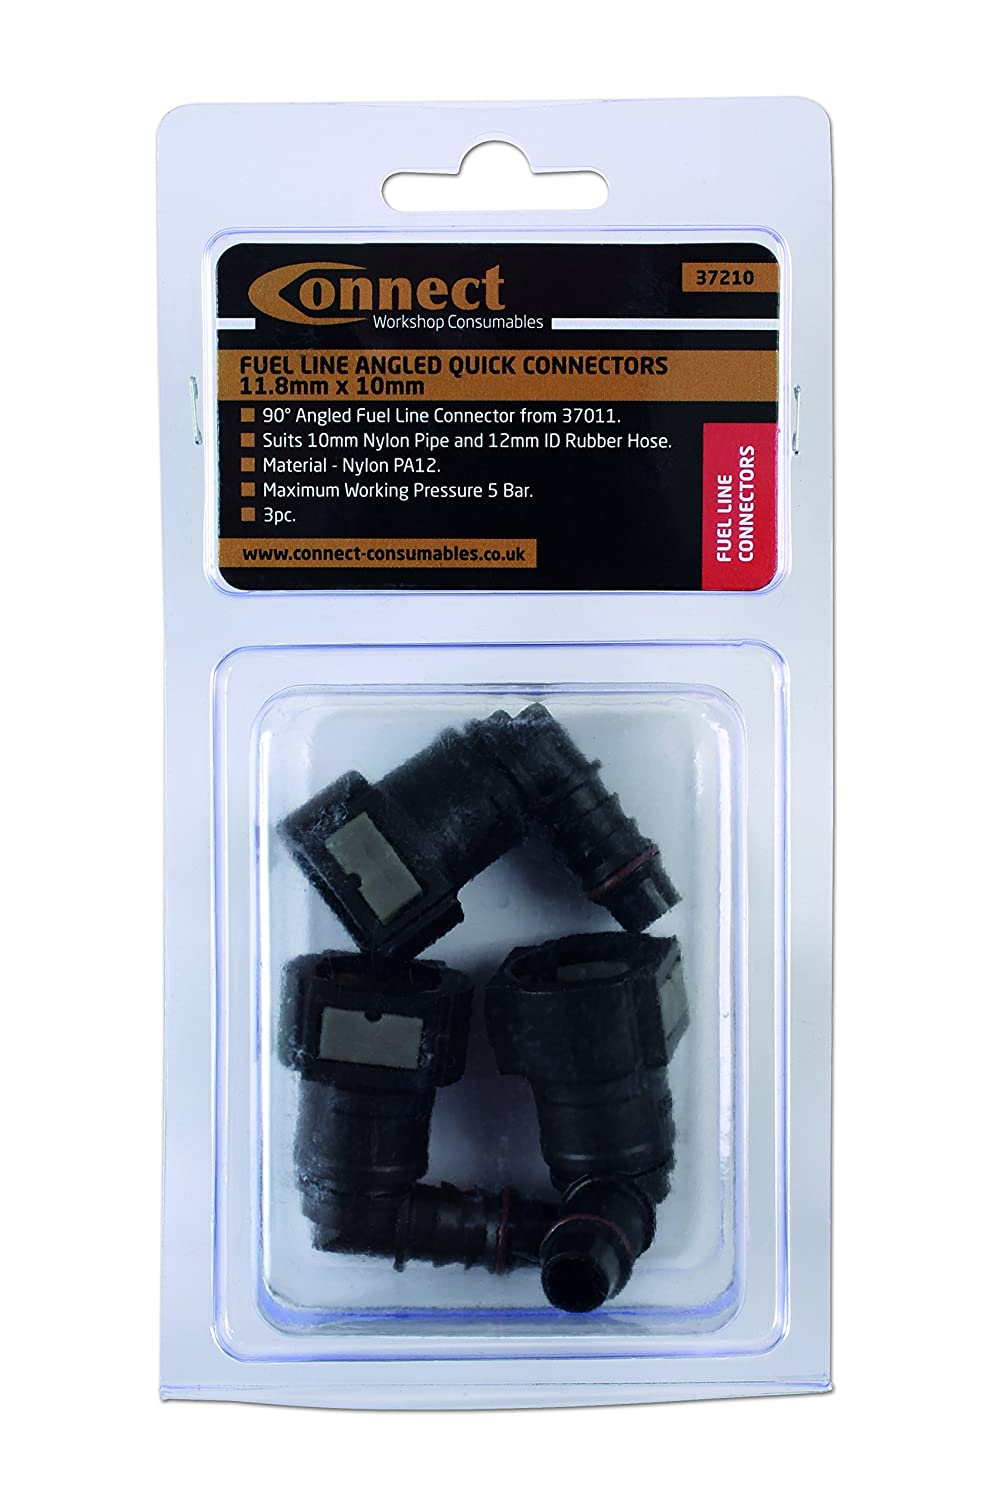 Connect consommables Connect Atelier consommables 37210/carburant coud/é raccords rapides 11,8/mm x 10/mm pk 3